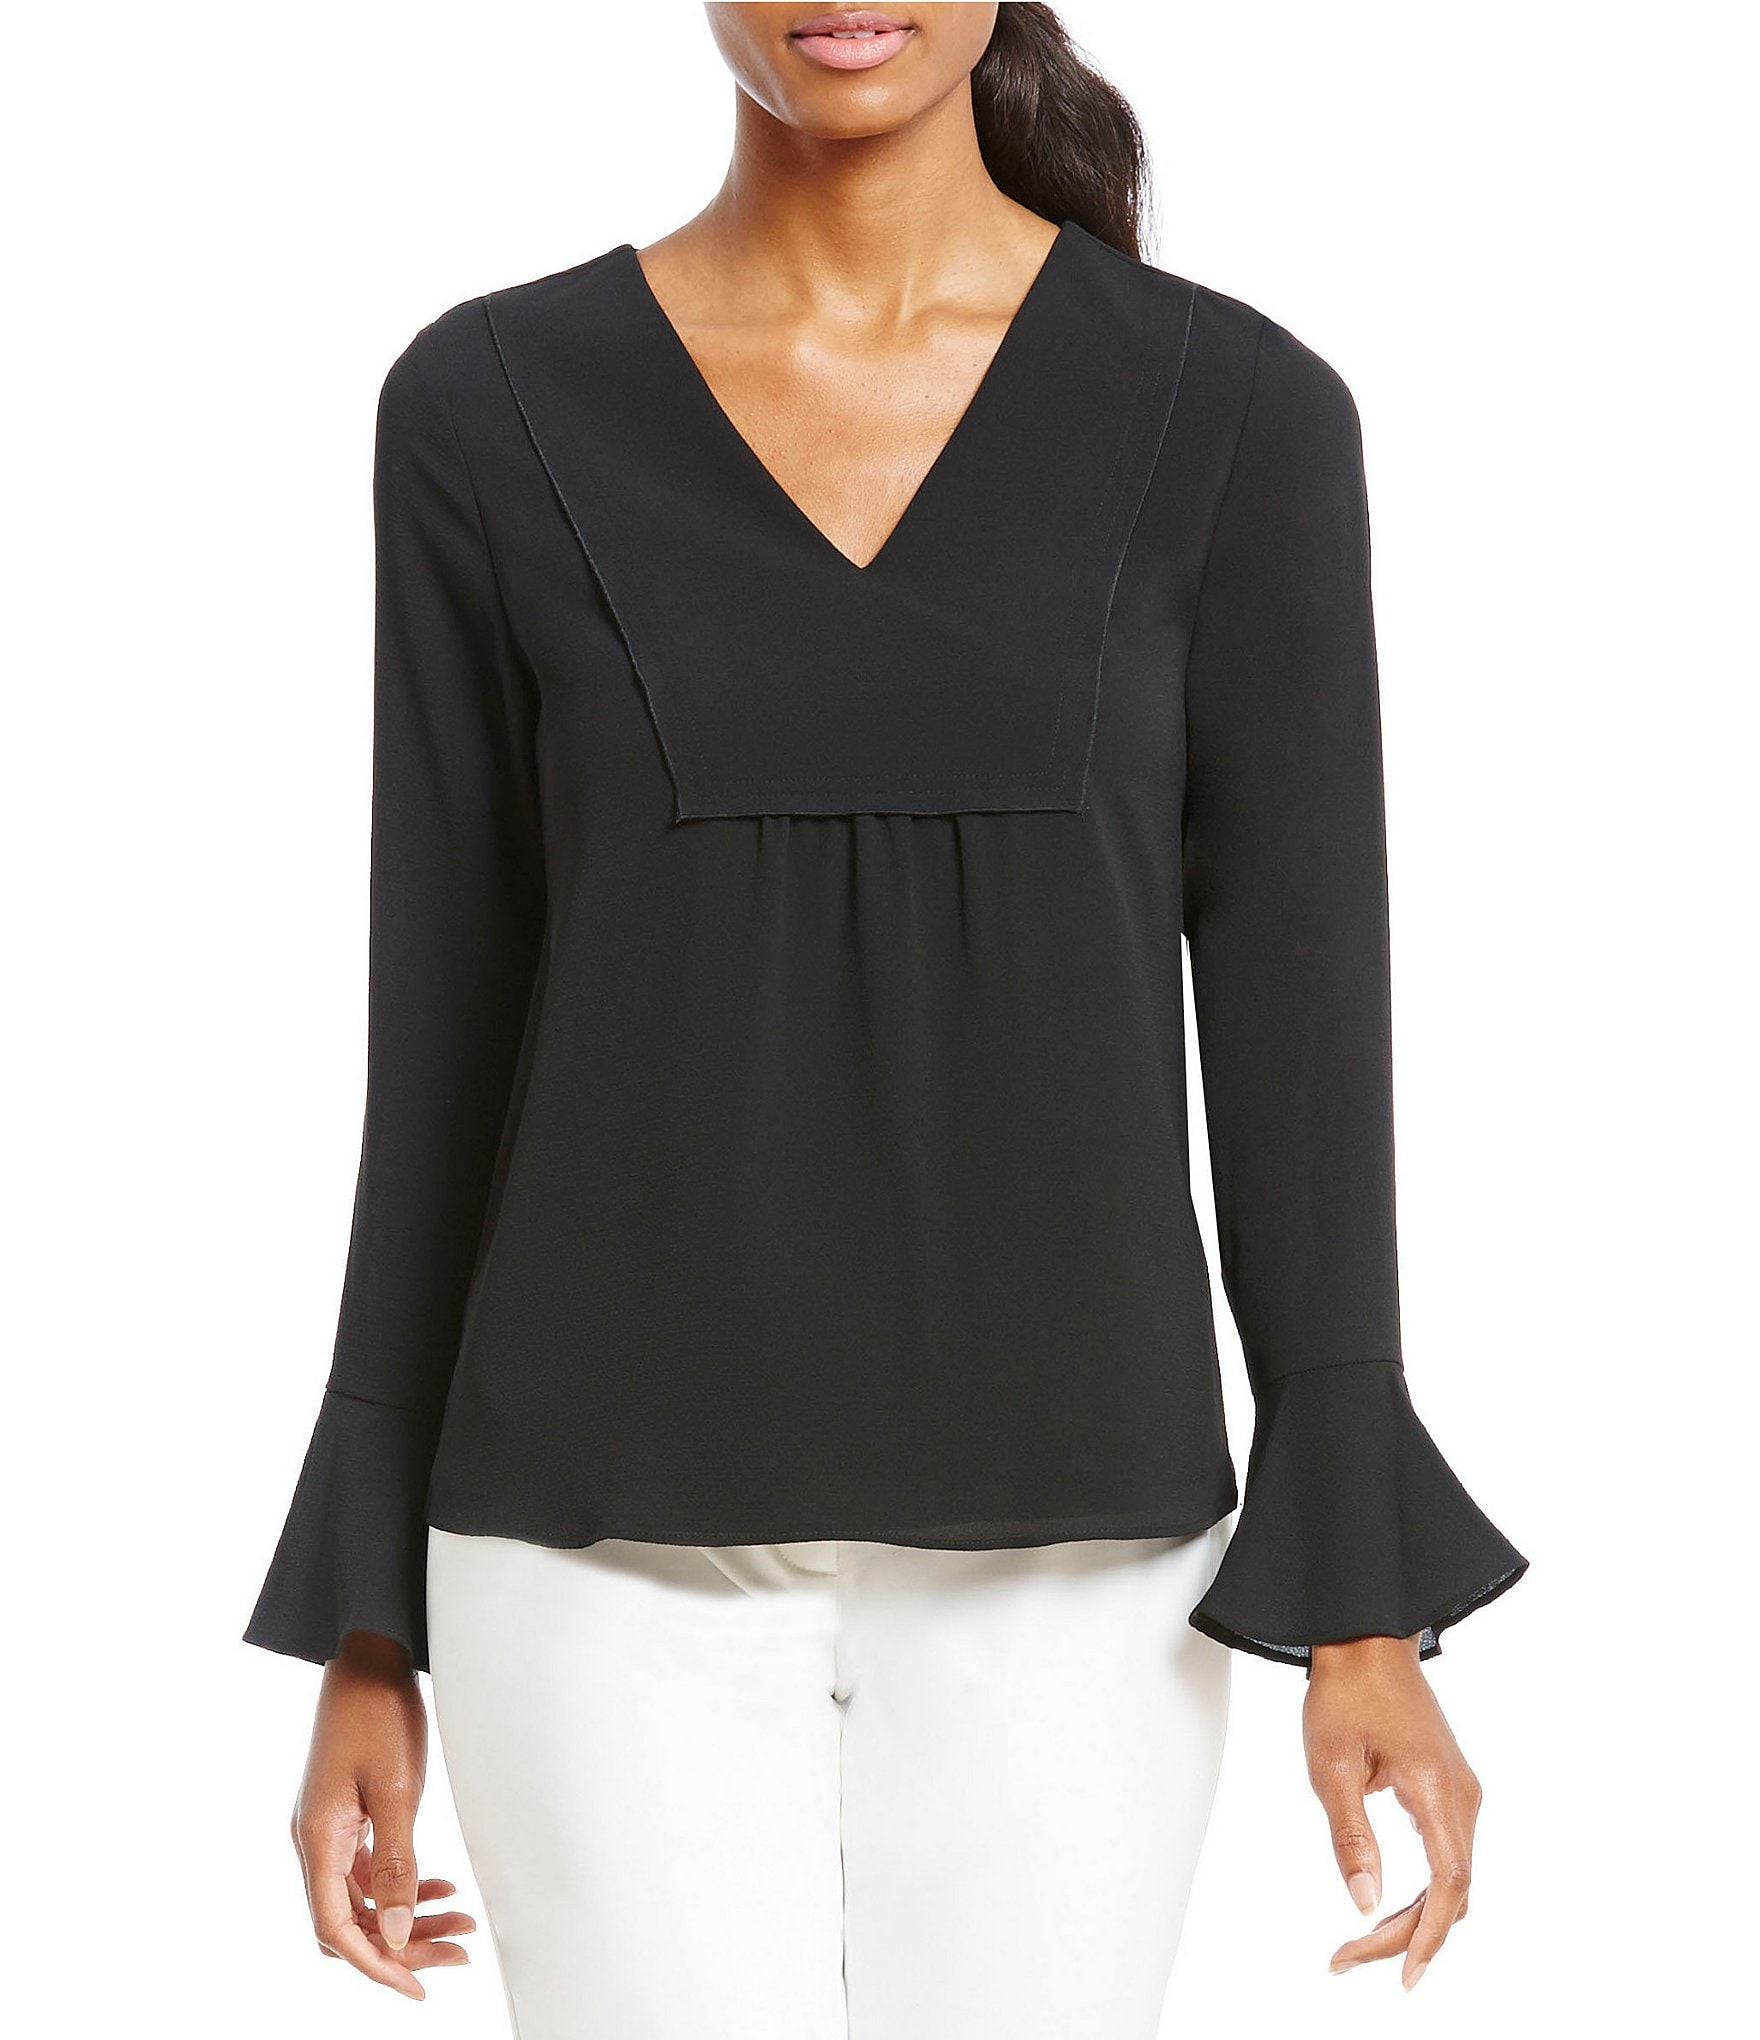 40 Off Emma Rose Tops Over The Shoulder Long Sleeve Blouse From -